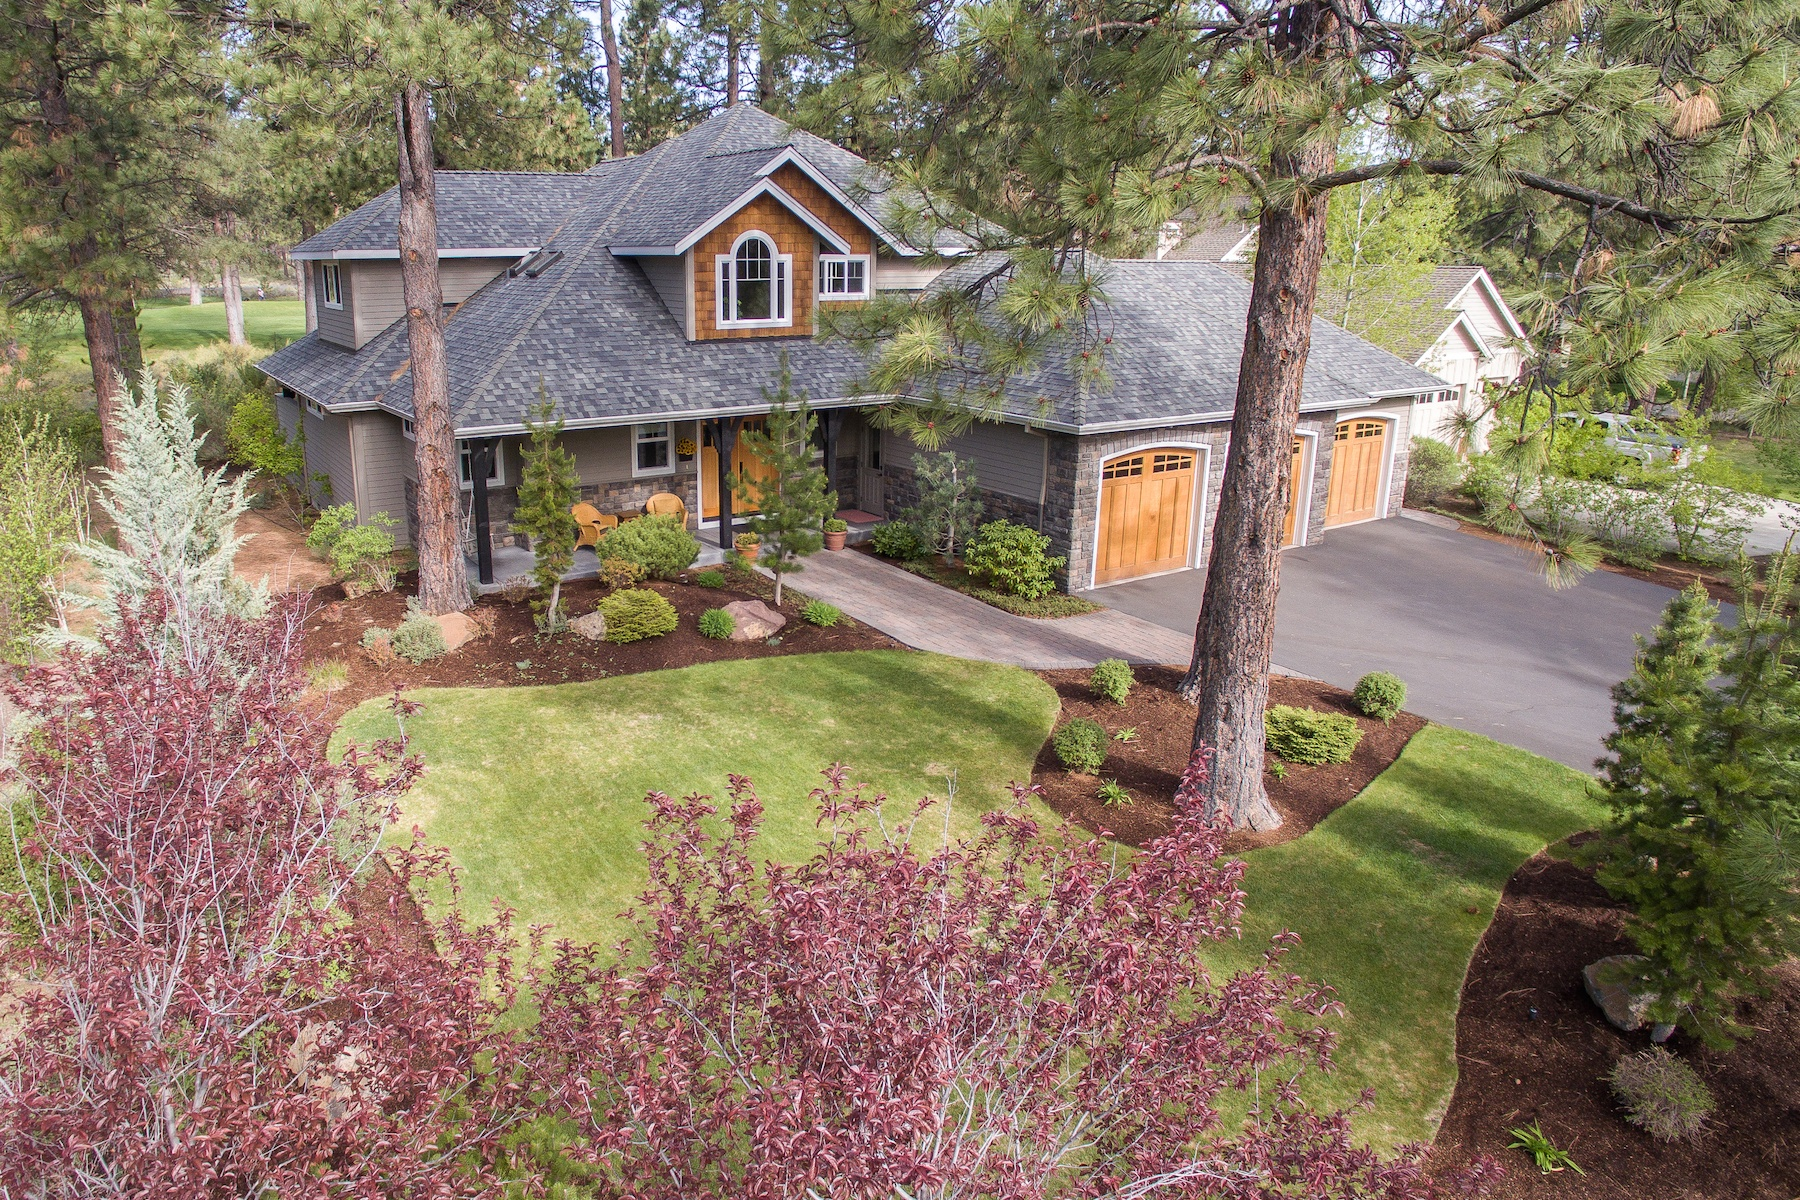 Single Family Home for Sale at 60819 Currant Way, BEND Bend, Oregon, 97702 United States